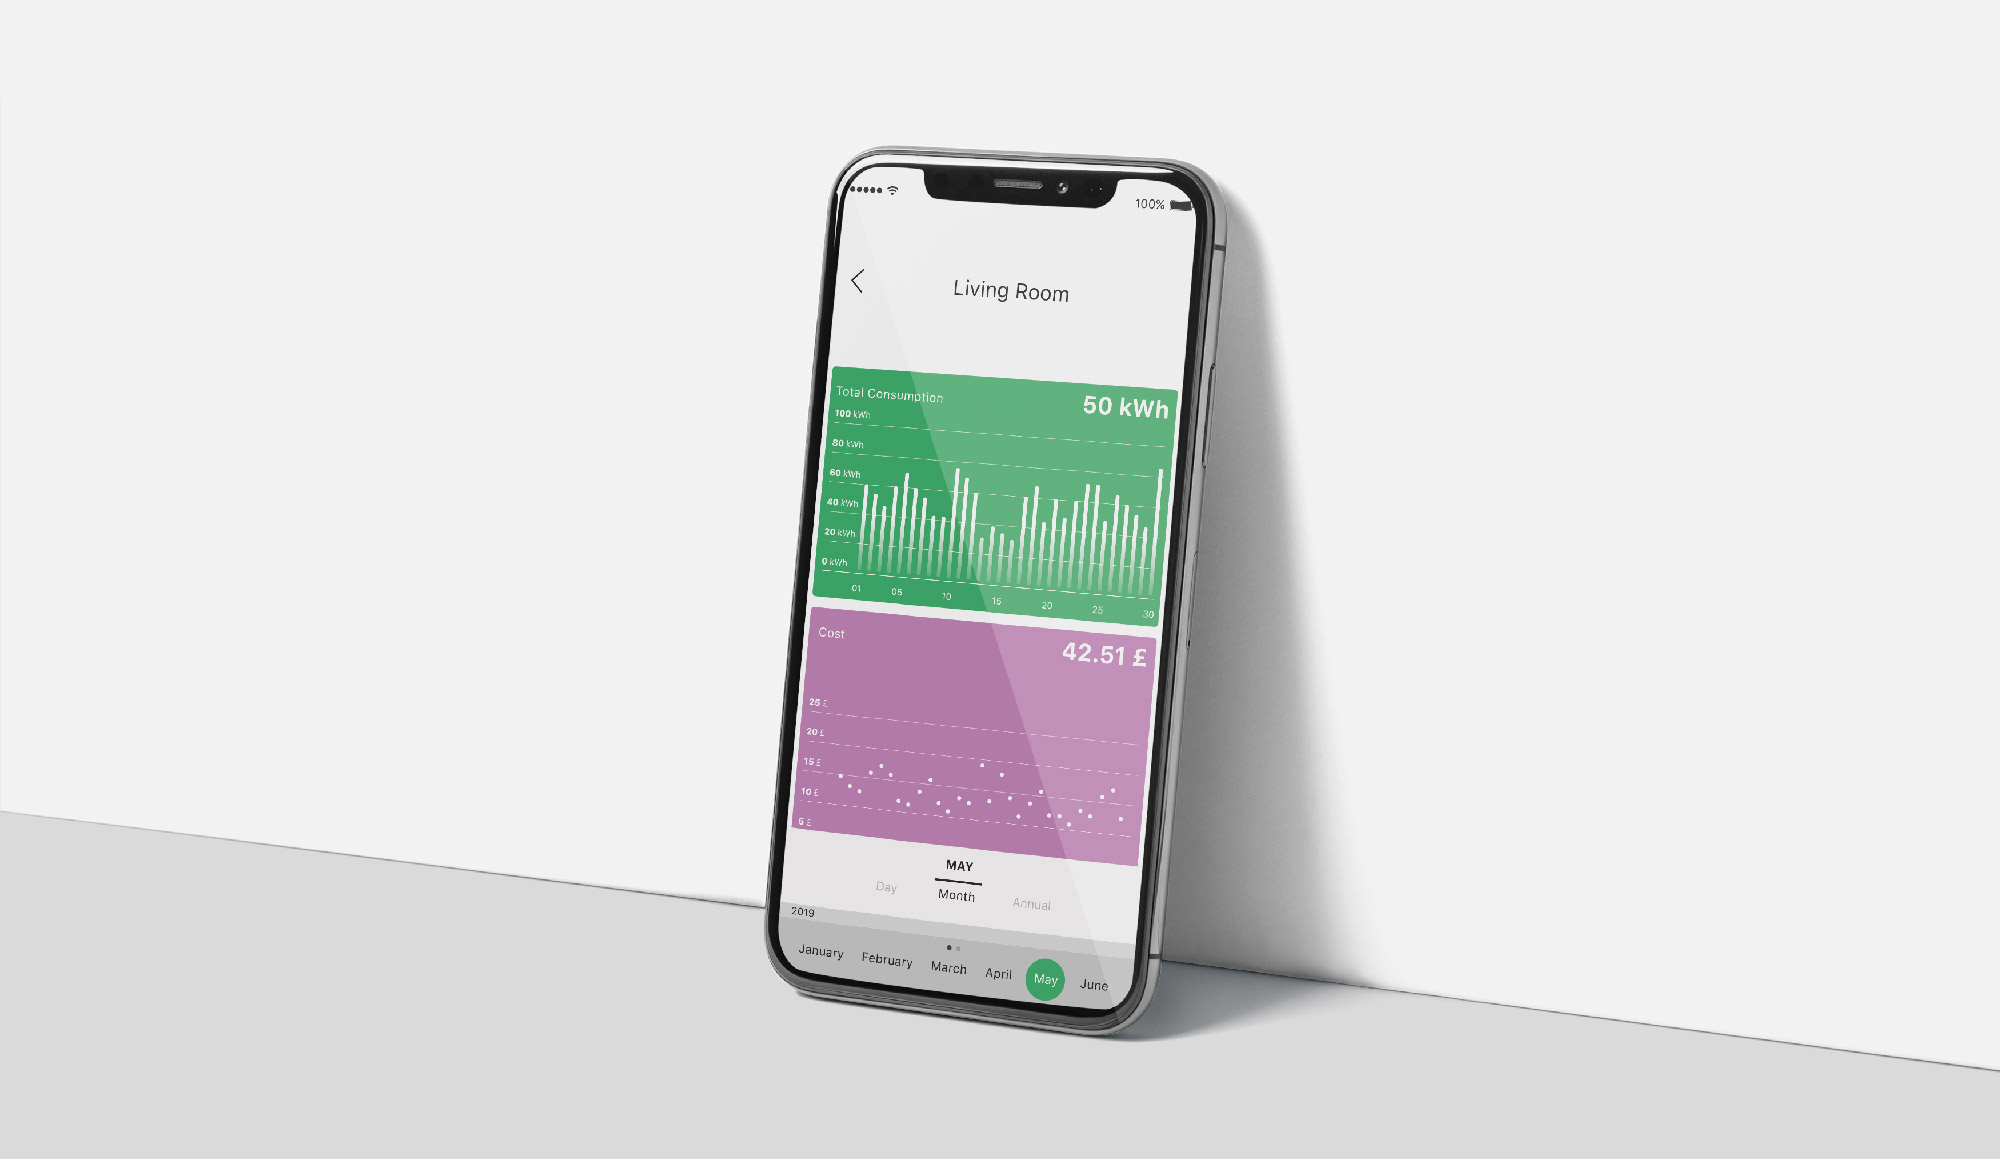 Rointe Connect app on smartphone showing efficiency statistics